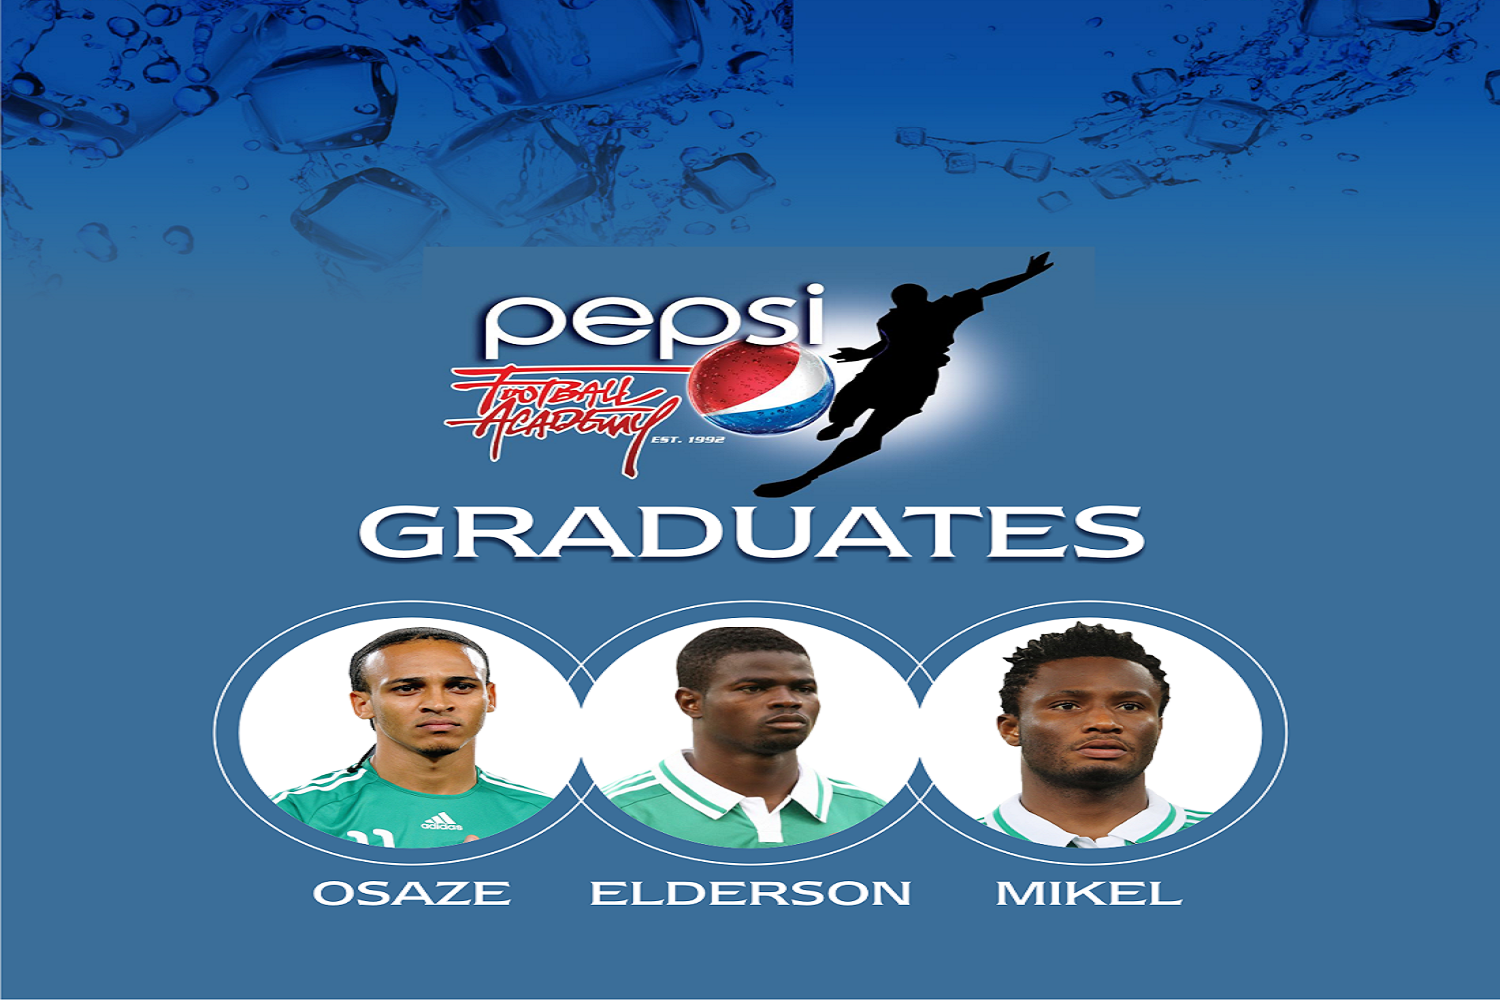 Here Are 6 Top Football Academies In Nigeria Honing The Skills Of Future World Class Players Ventures Africa